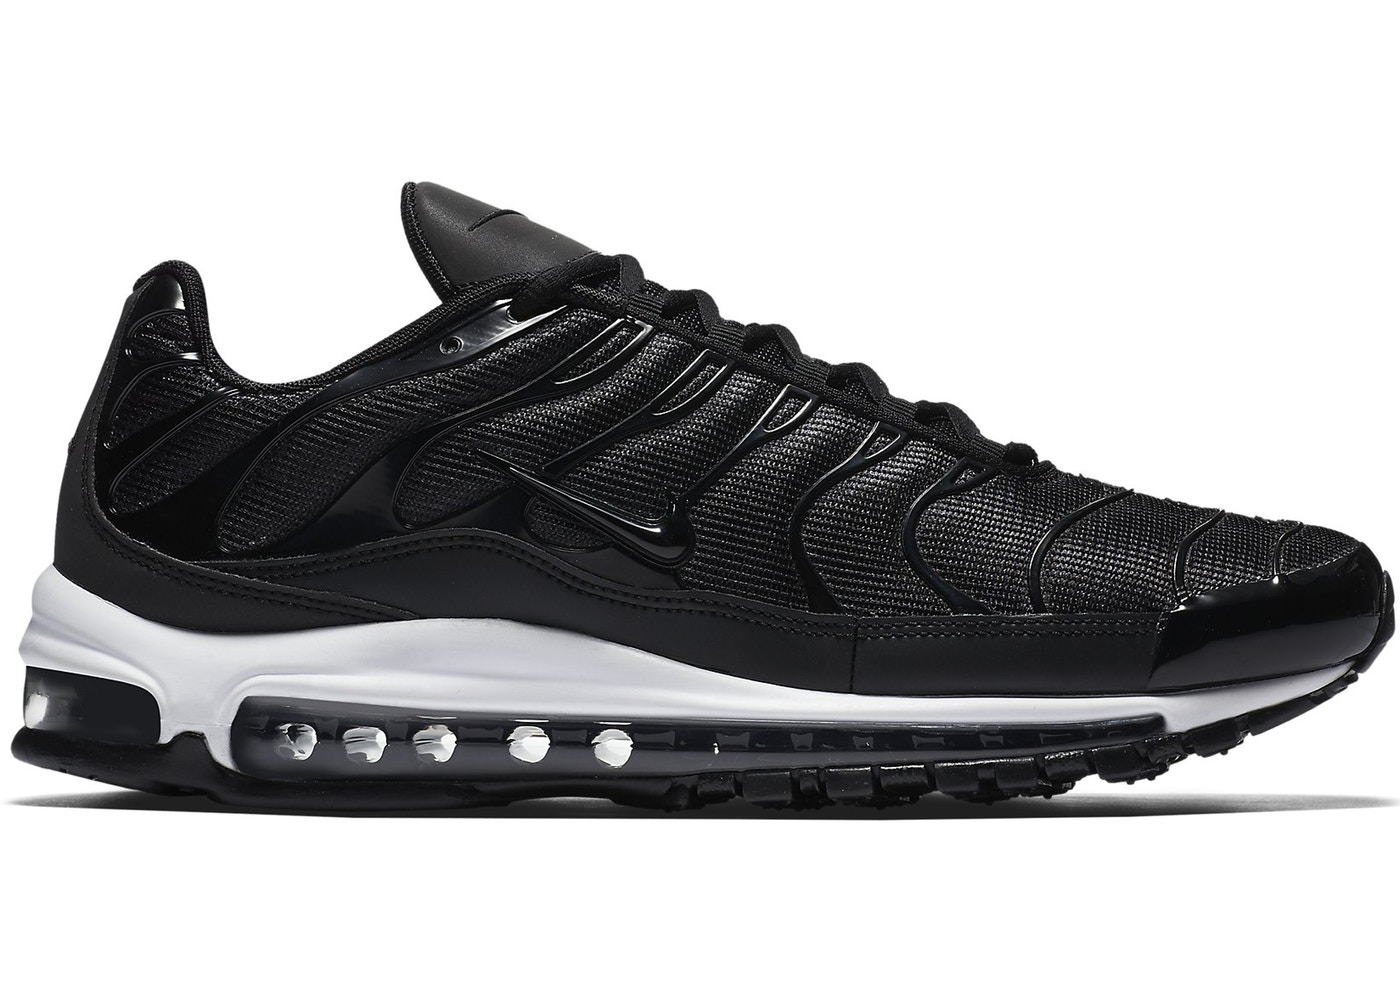 cfa704c993a8 Air Max 97 Plus Black White